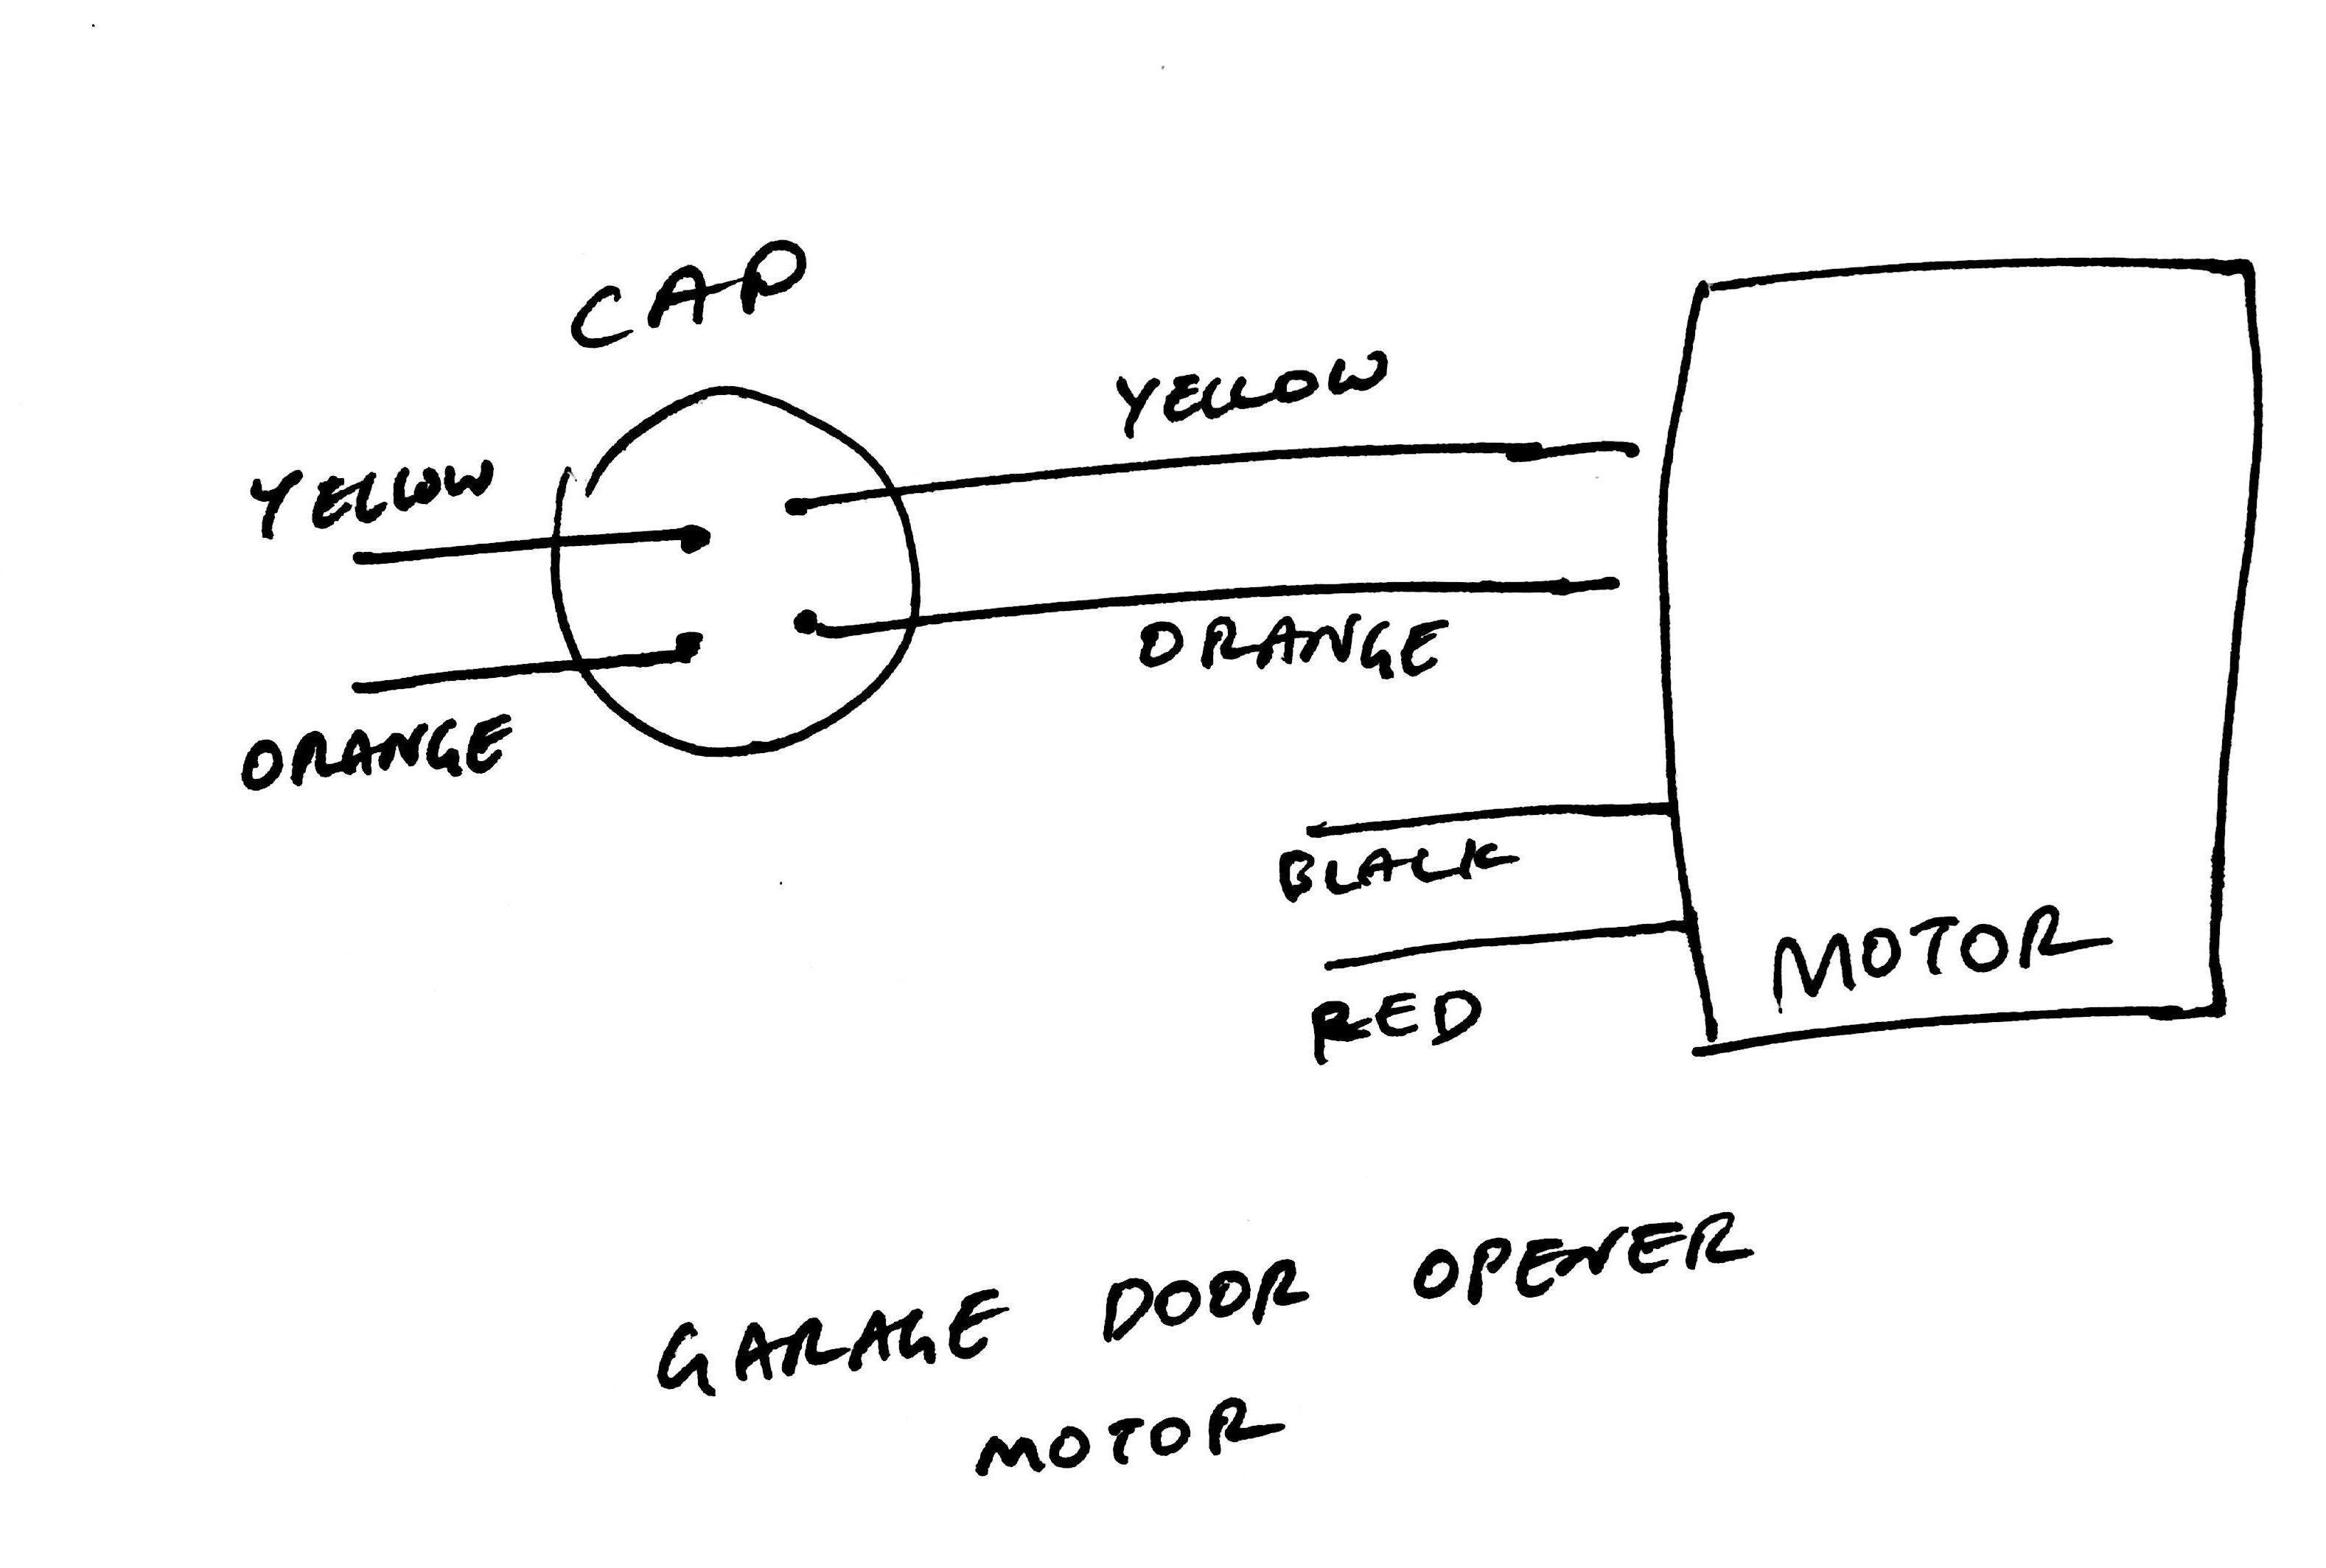 electric motor capacitor wiring diagram Collection-H Bridge Wiring For A 4 Wire AC Motor Electrical Engineering Noticeable Capacitor Diagram 13-l